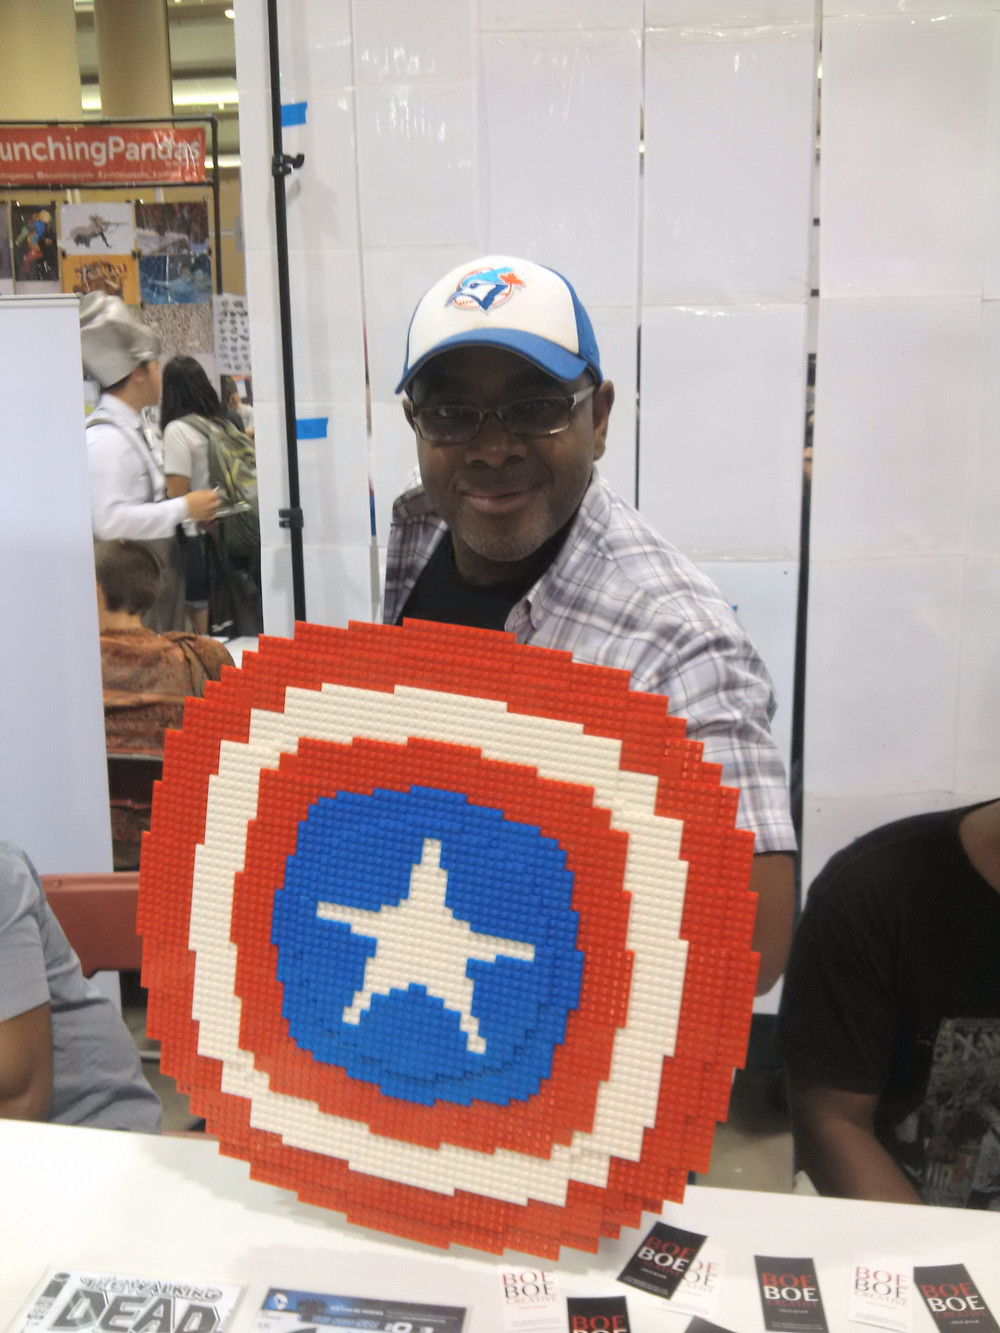 An awesome Captain America shield made by a cosplayer at Fan Expo. Thanks for letting me get a pic with it.